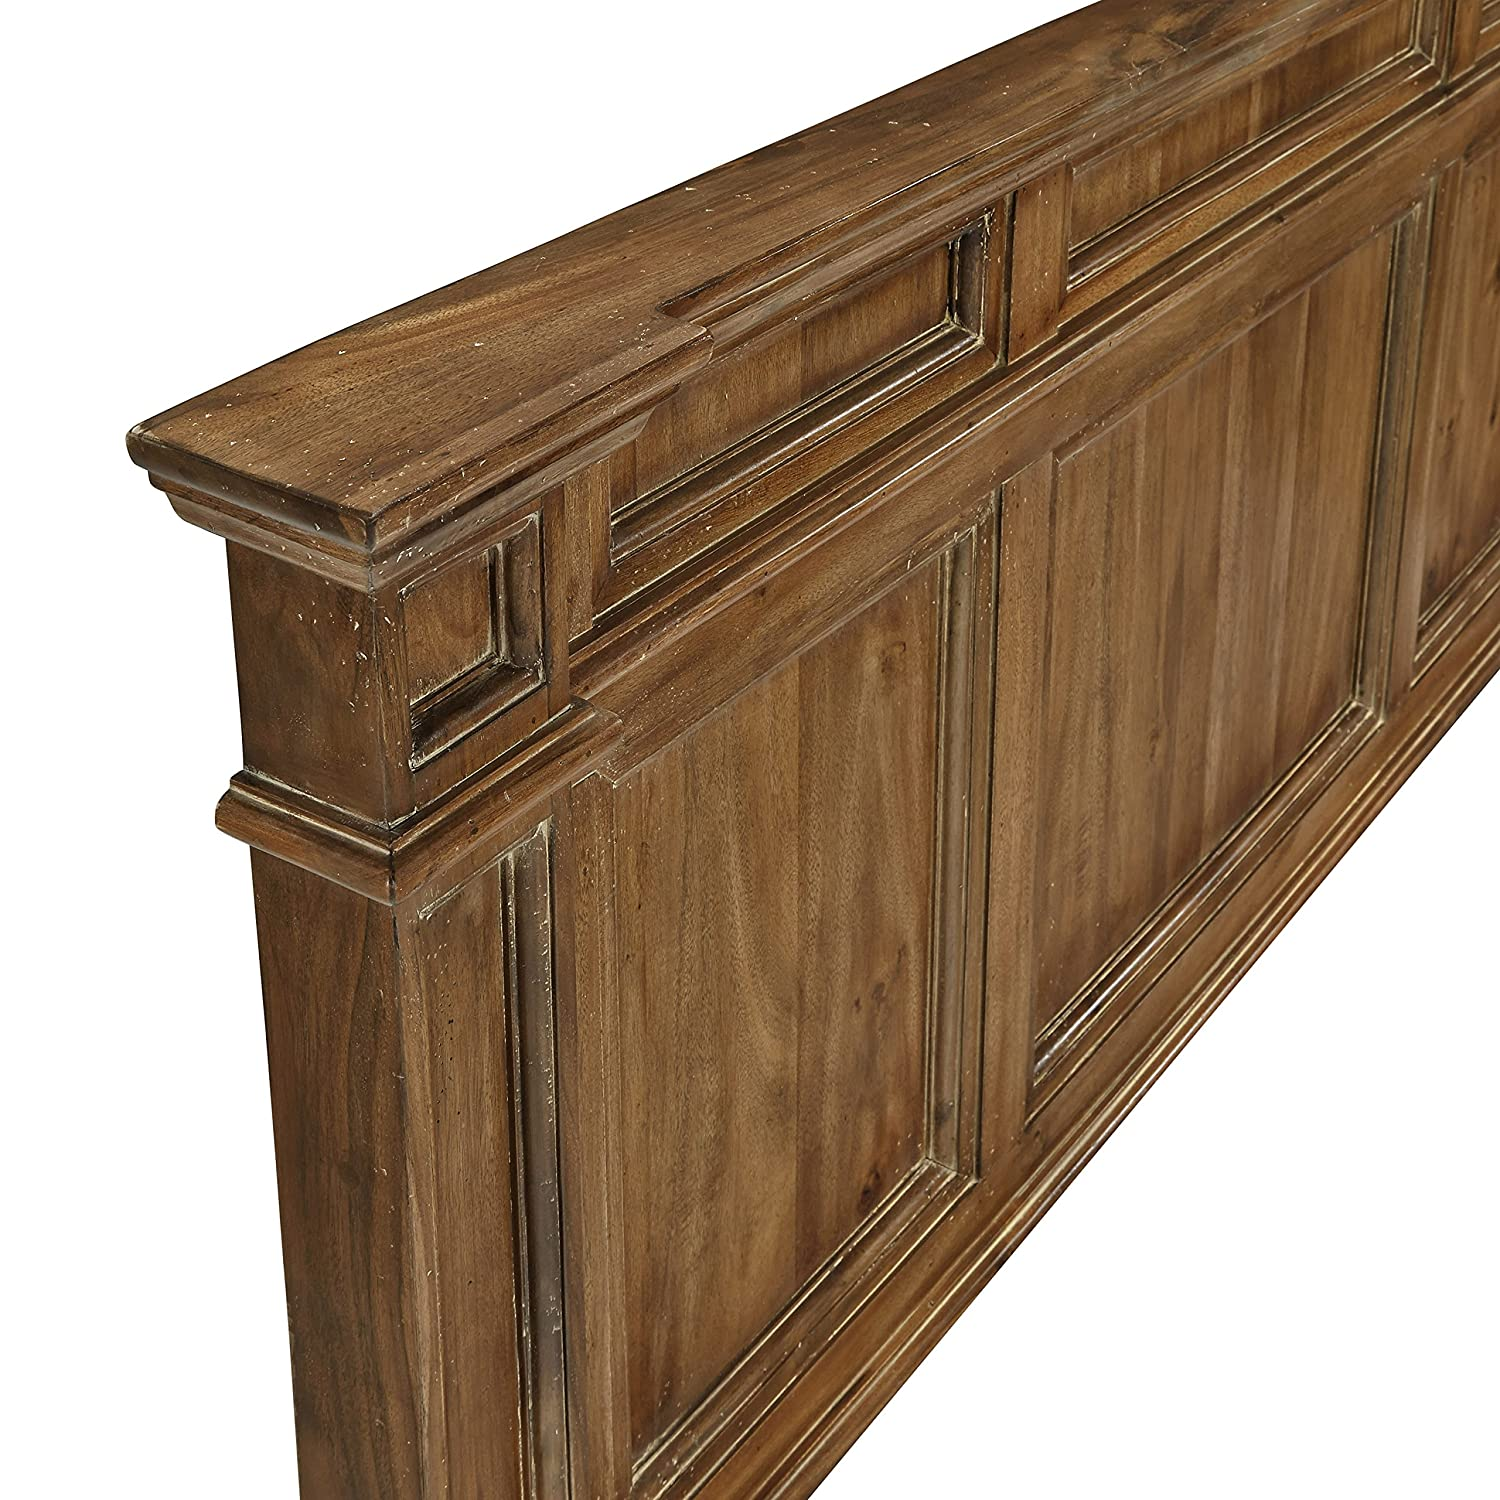 Price cut limited time offer shop now for the best selection hurry - Amazon Com Home Styles 5004 601 Americana Headboard King California King Distressed Oak